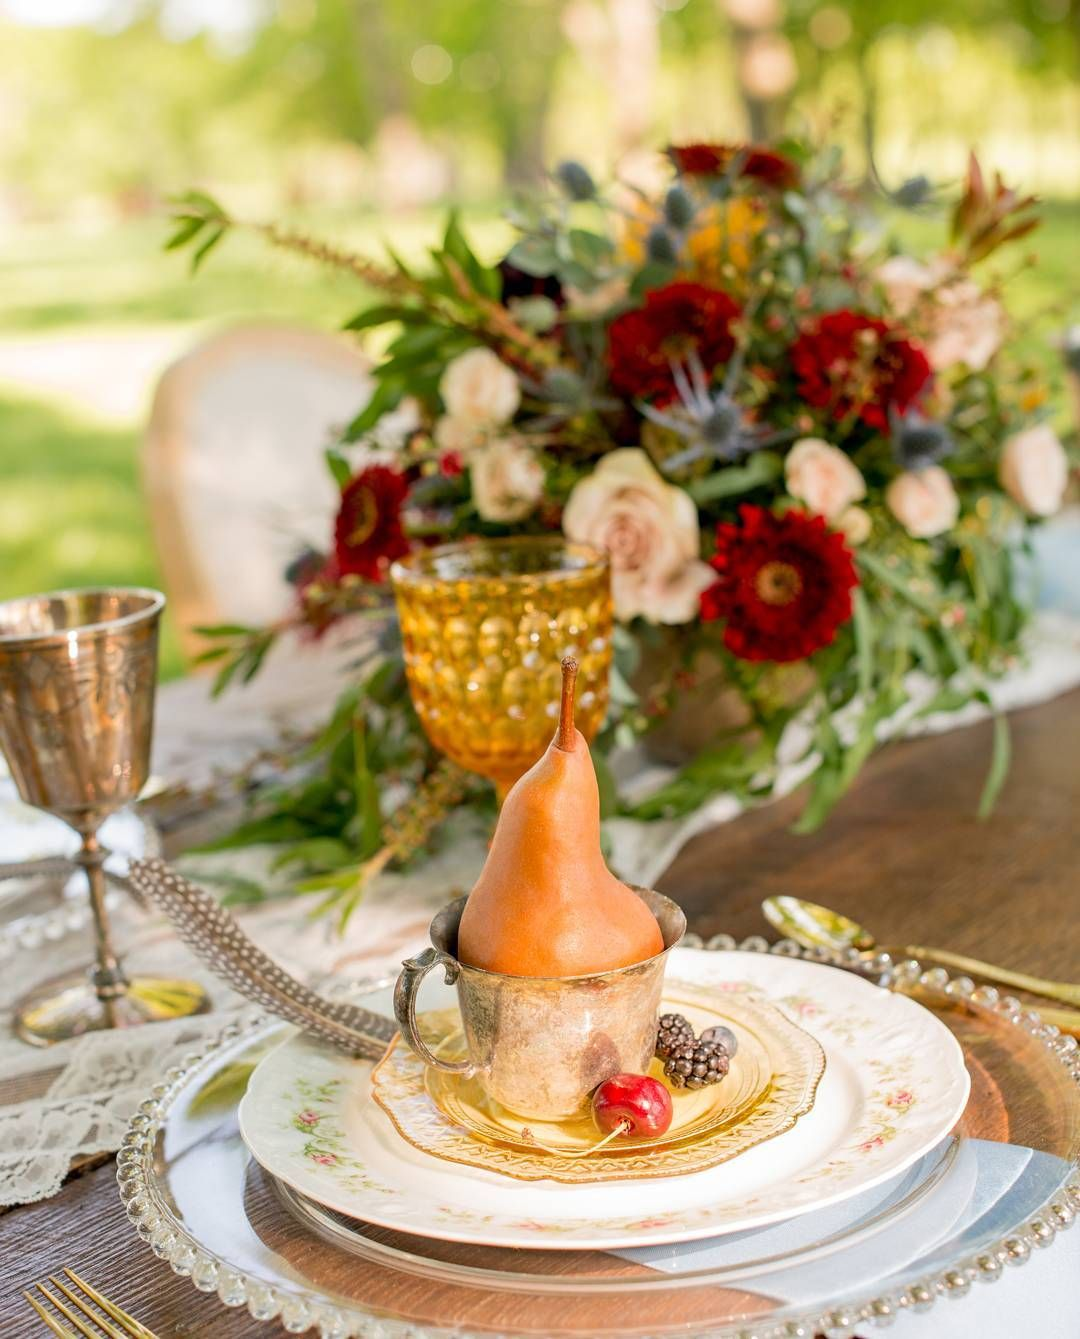 Rosh Hashanah table with pears